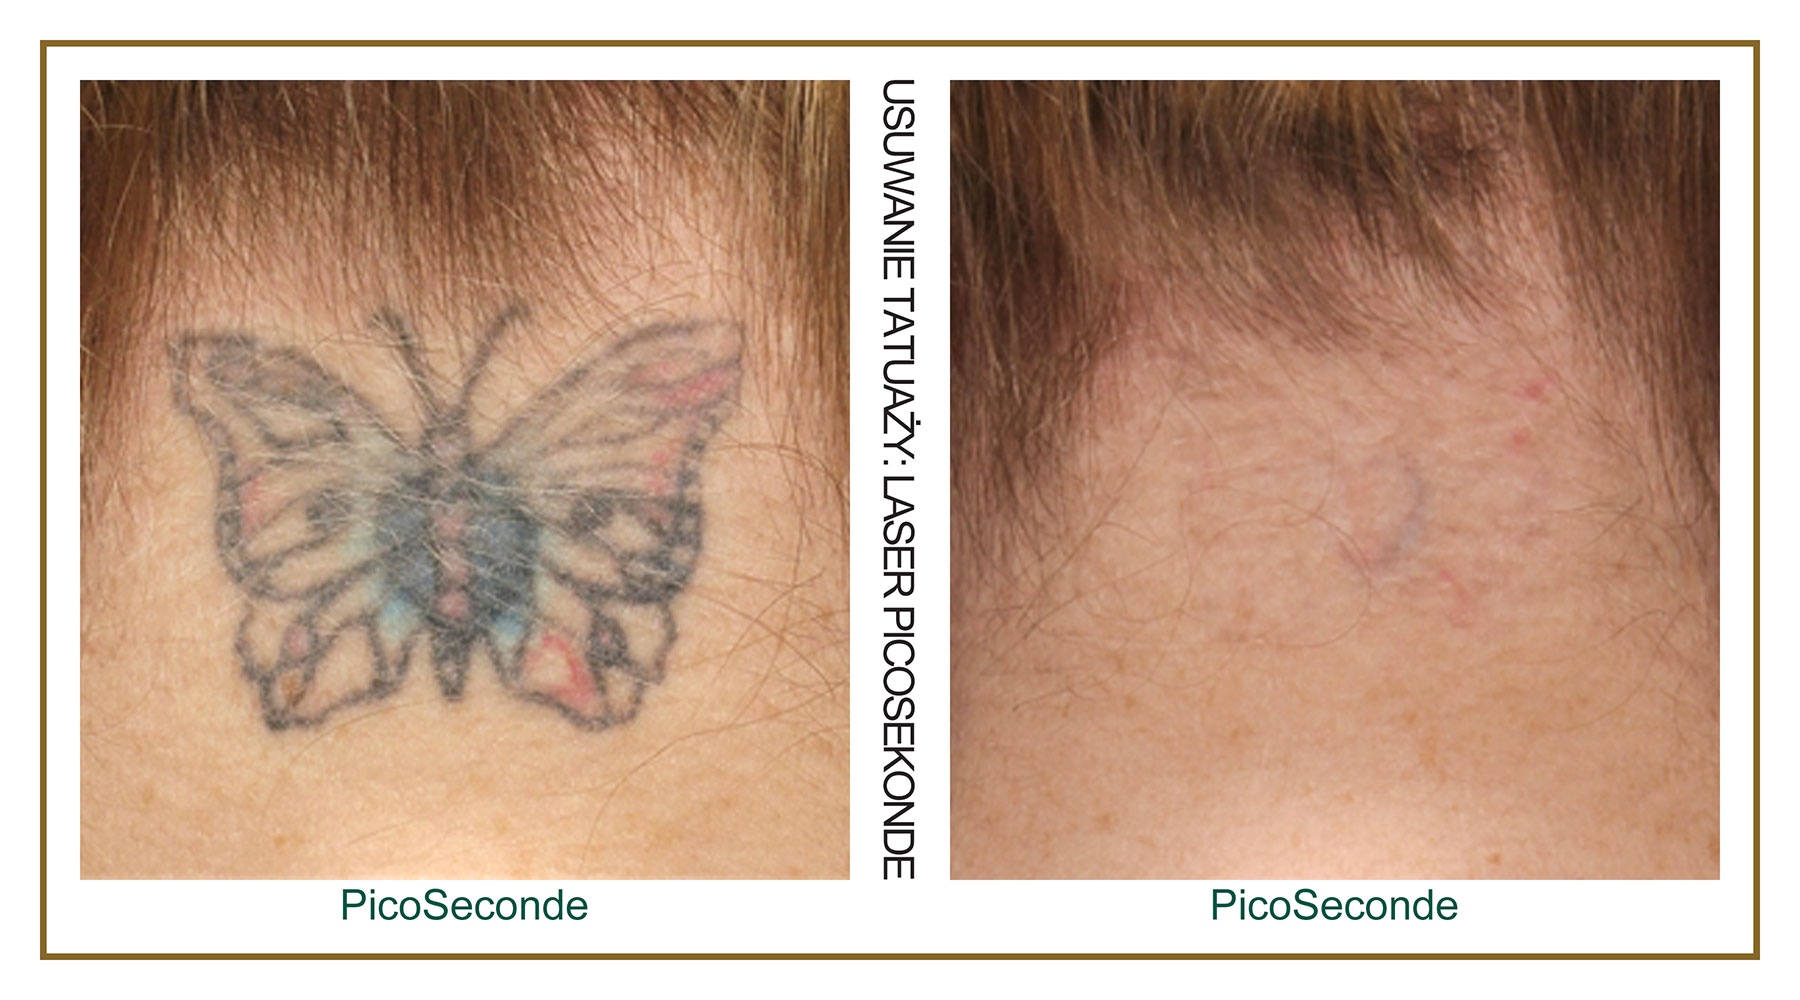 Tattoo-Removal-Laser-PicoSecond-PL-5.jpg